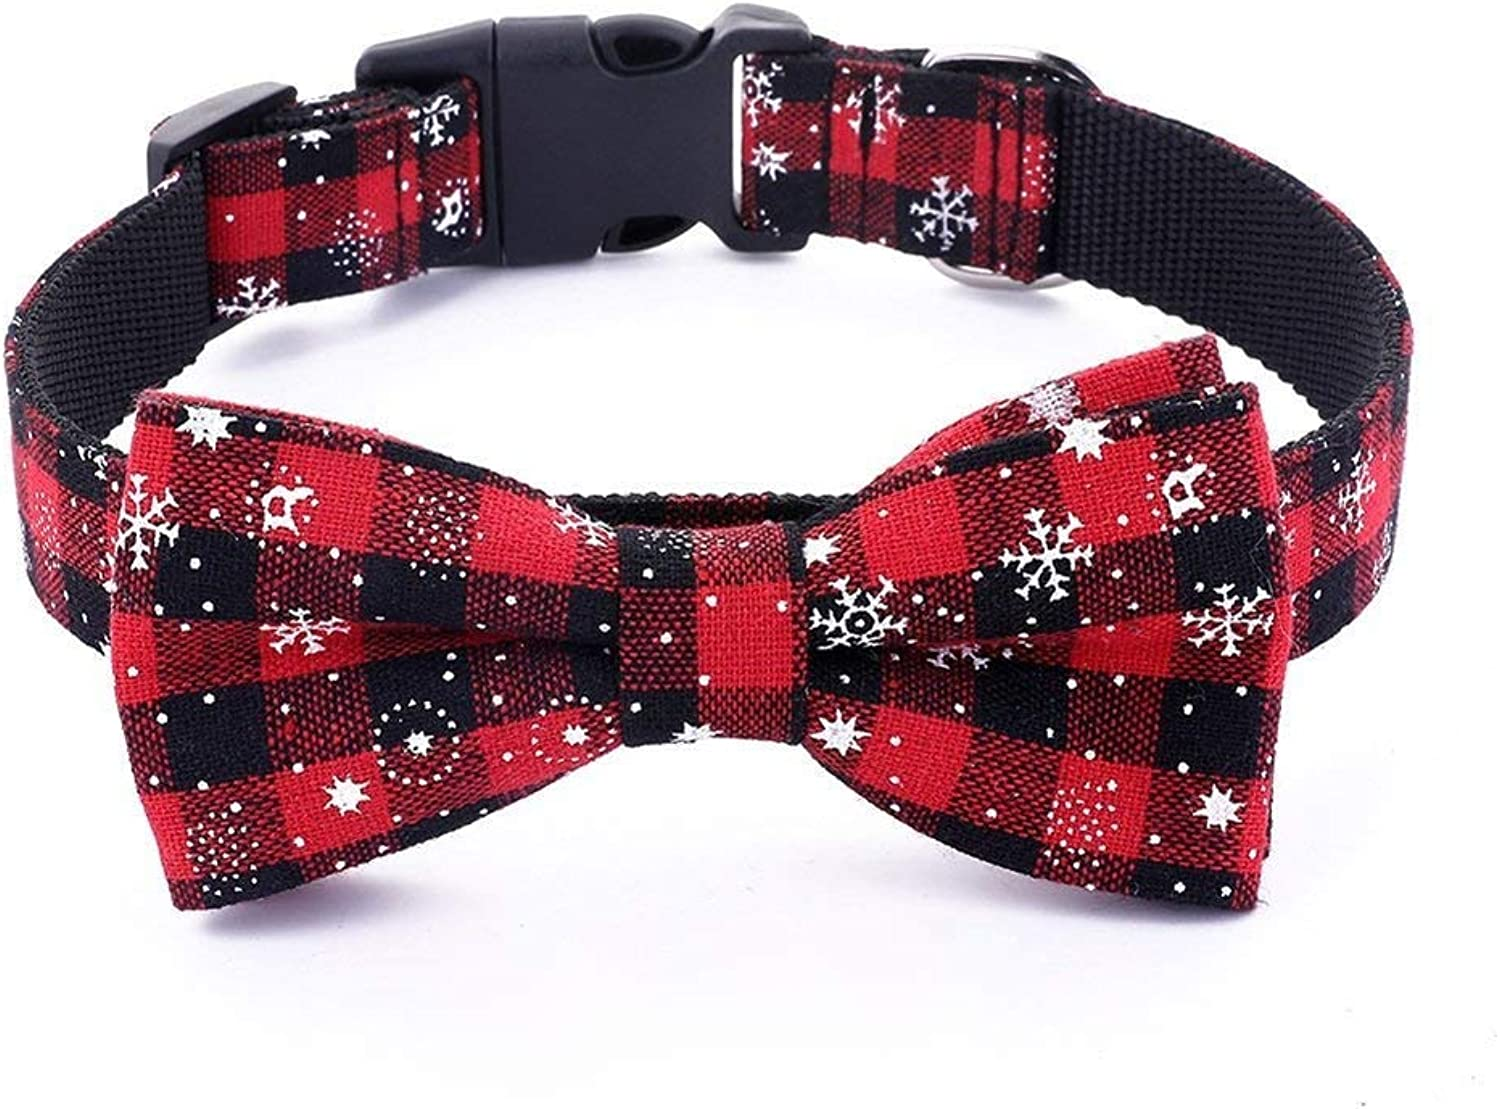 Albabara Christmas Dog Cat Collar with Bow Tie Adjustable 100% Cotton Nylon Design Cute Adorable for Large Medium Small Dogs and Cats